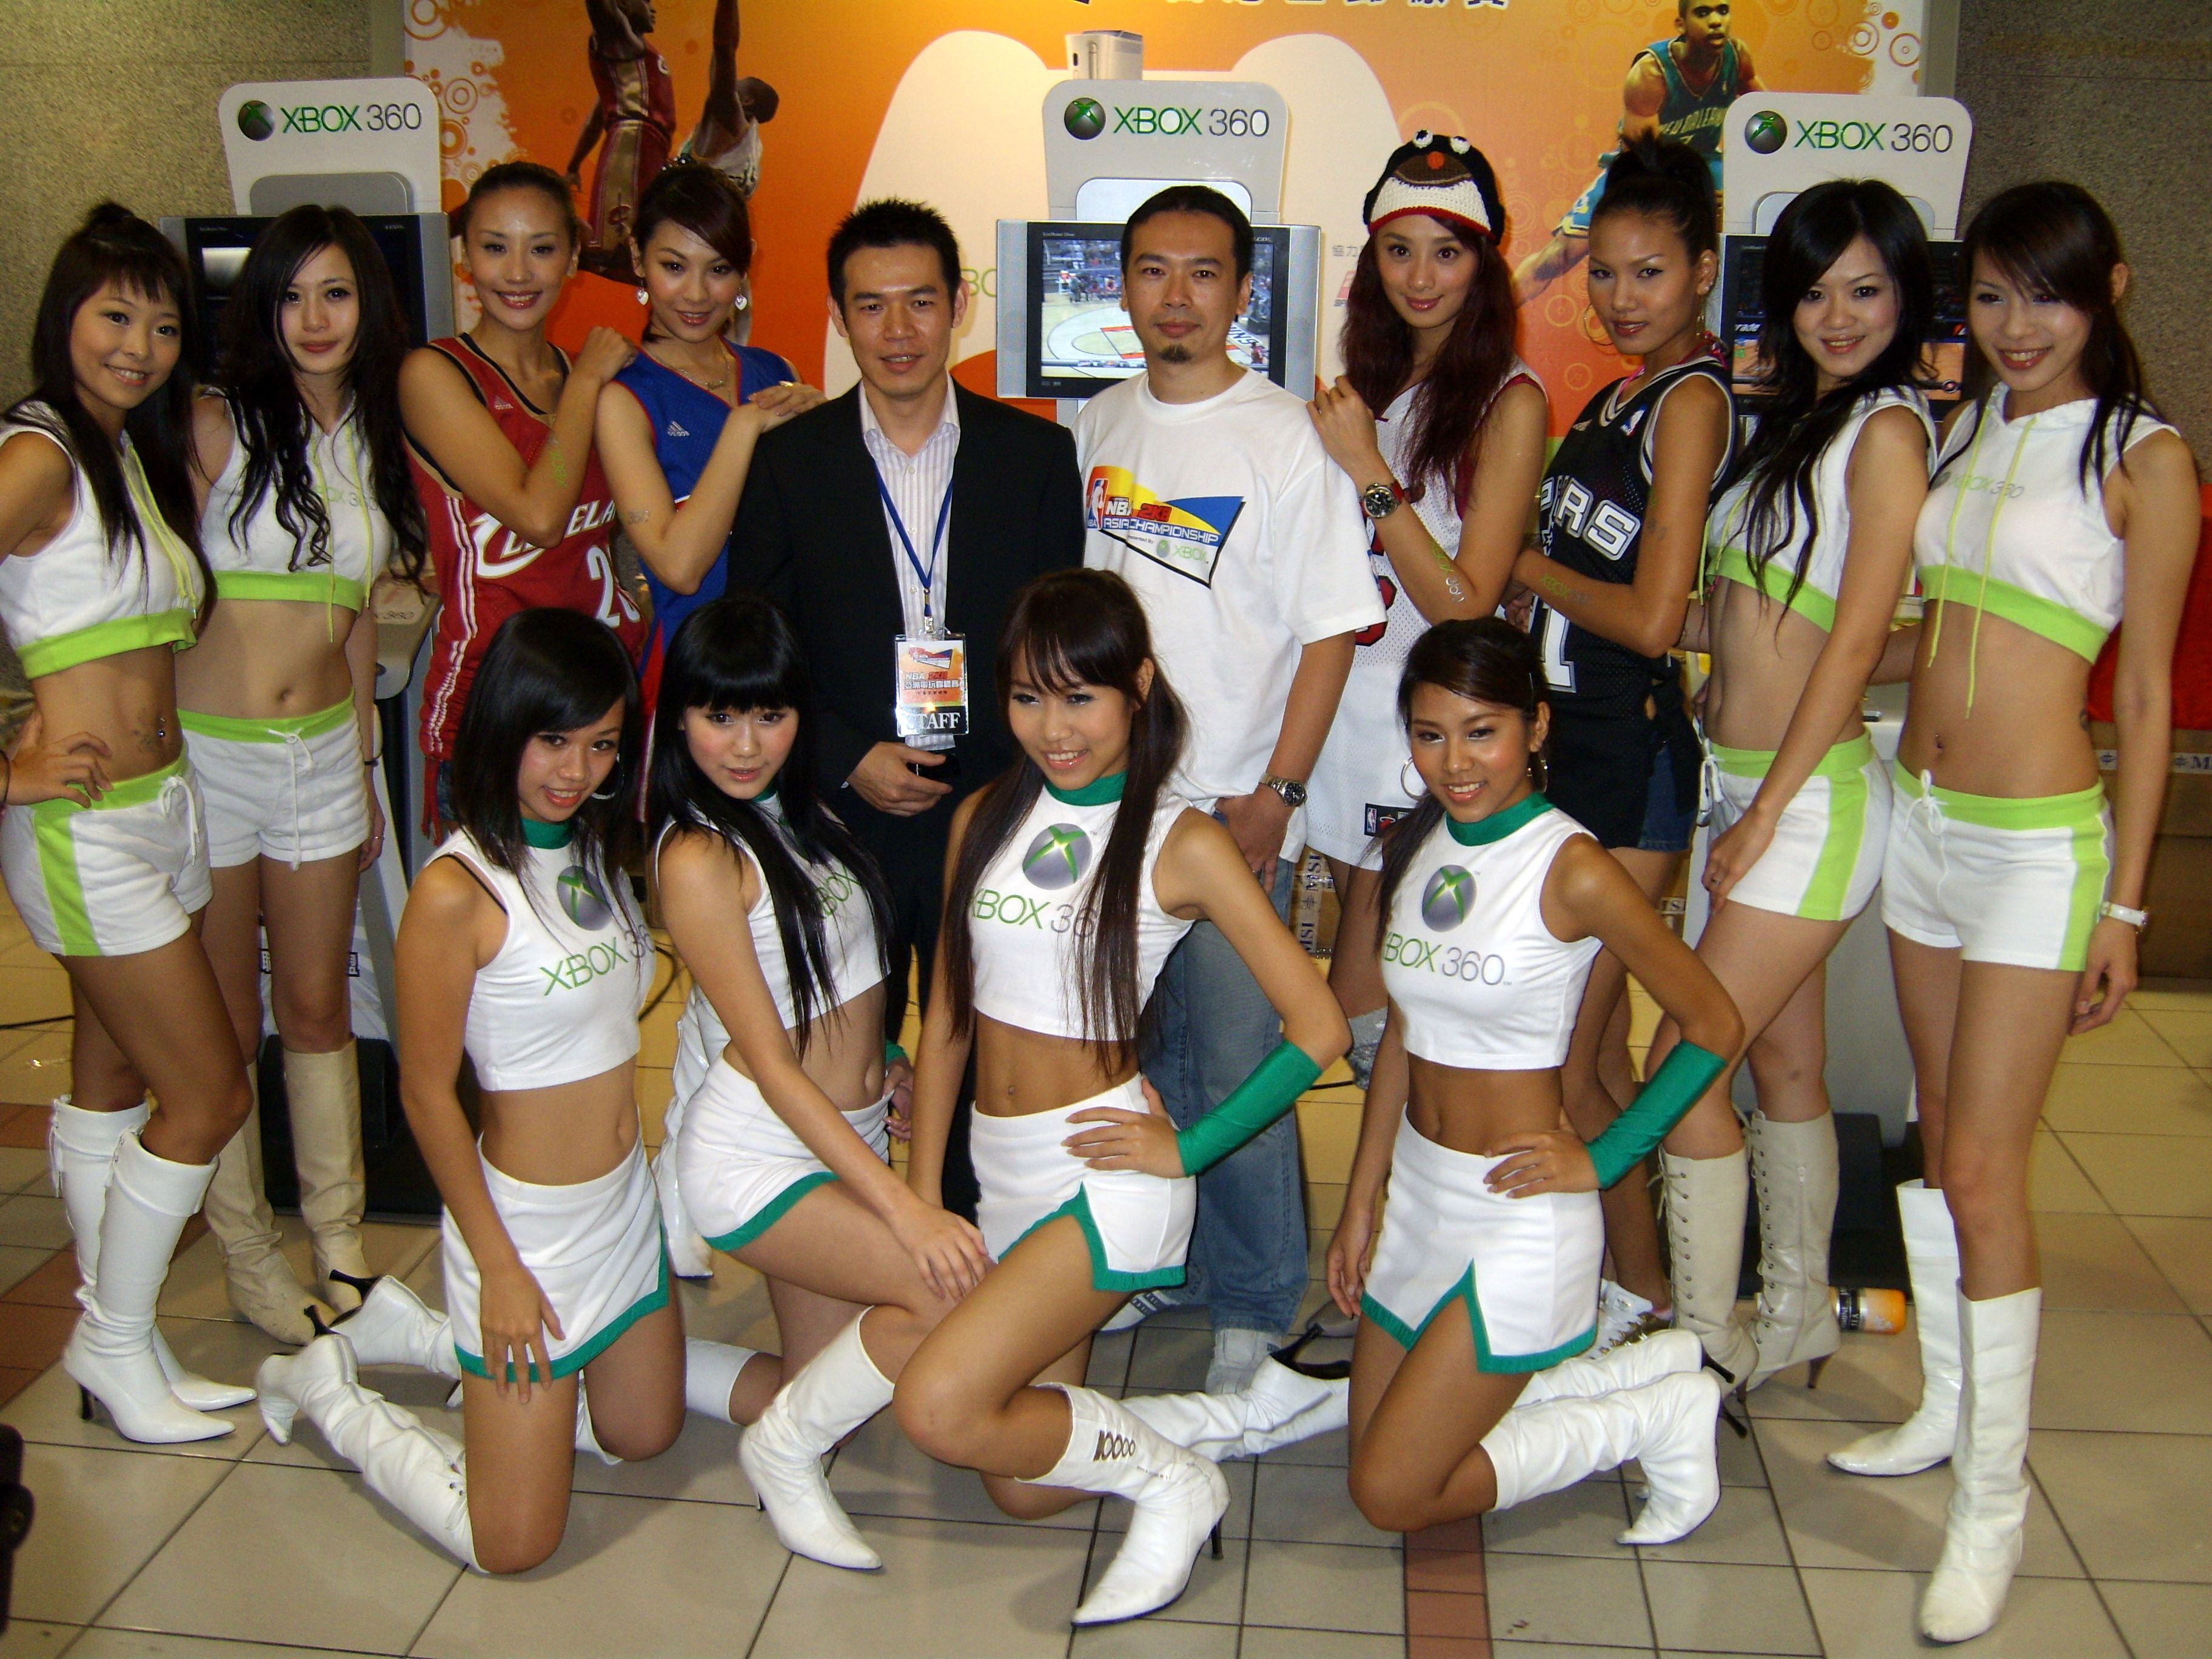 file:2007nba2k8asiachampionshiptaiwanstage executives models